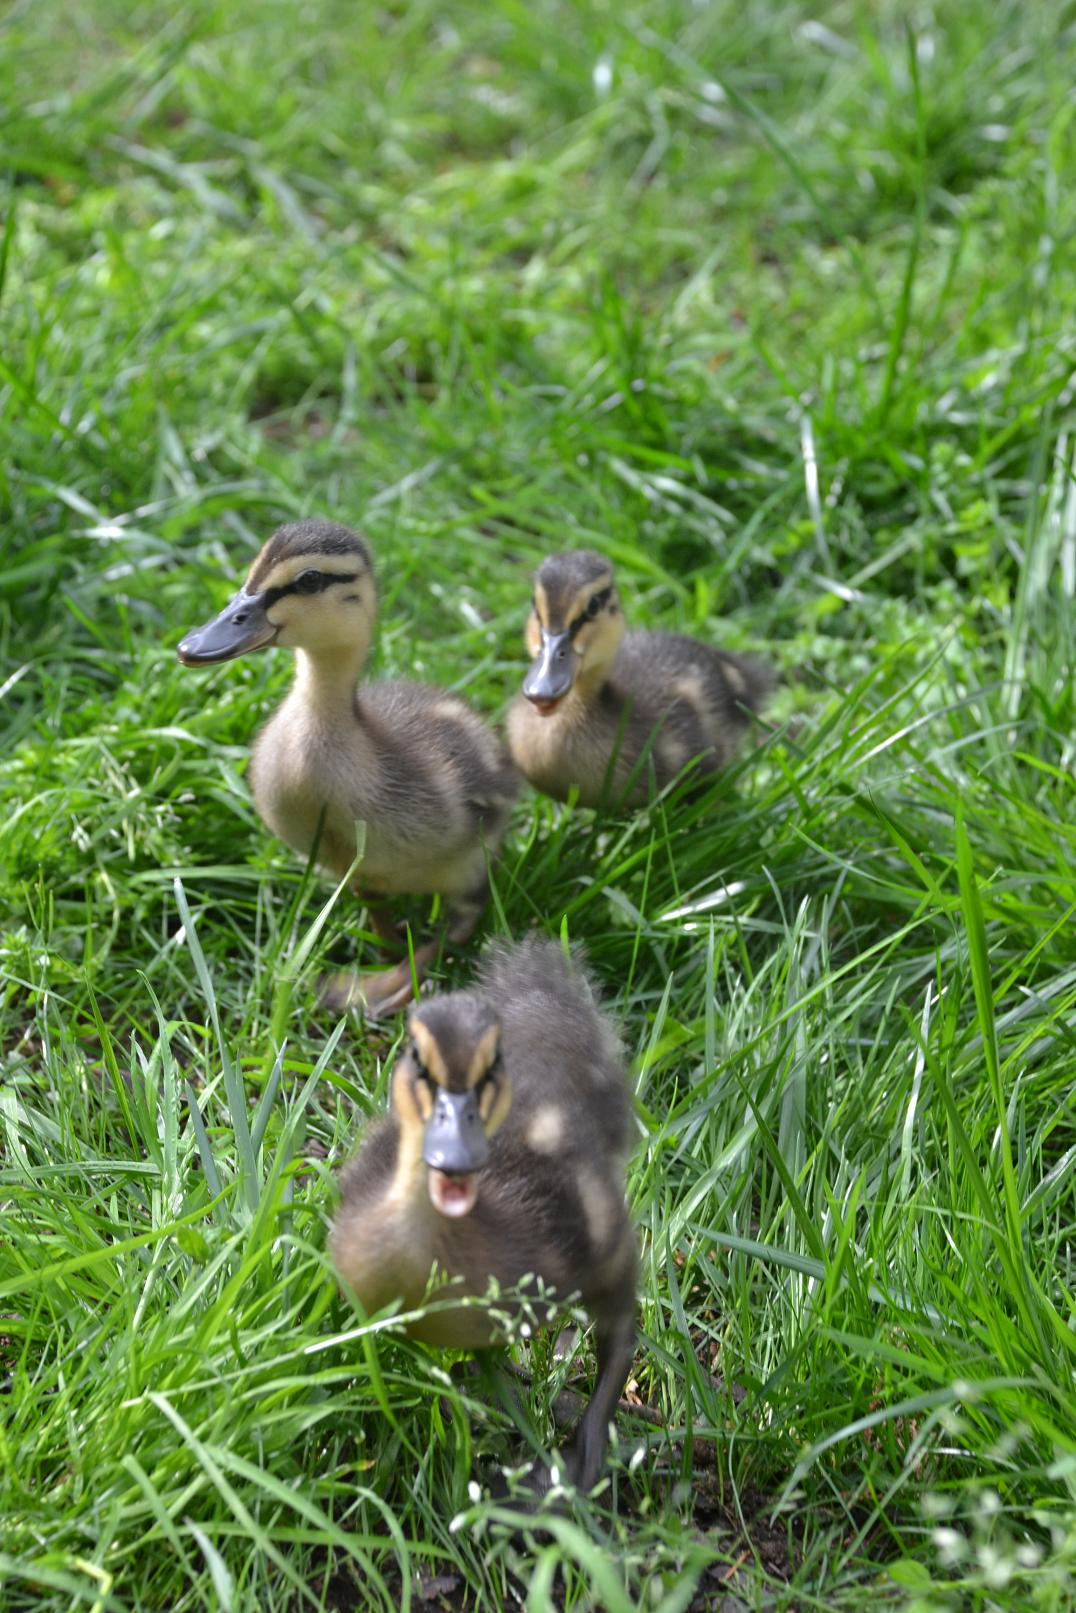 grass stained knees how are the ducklings